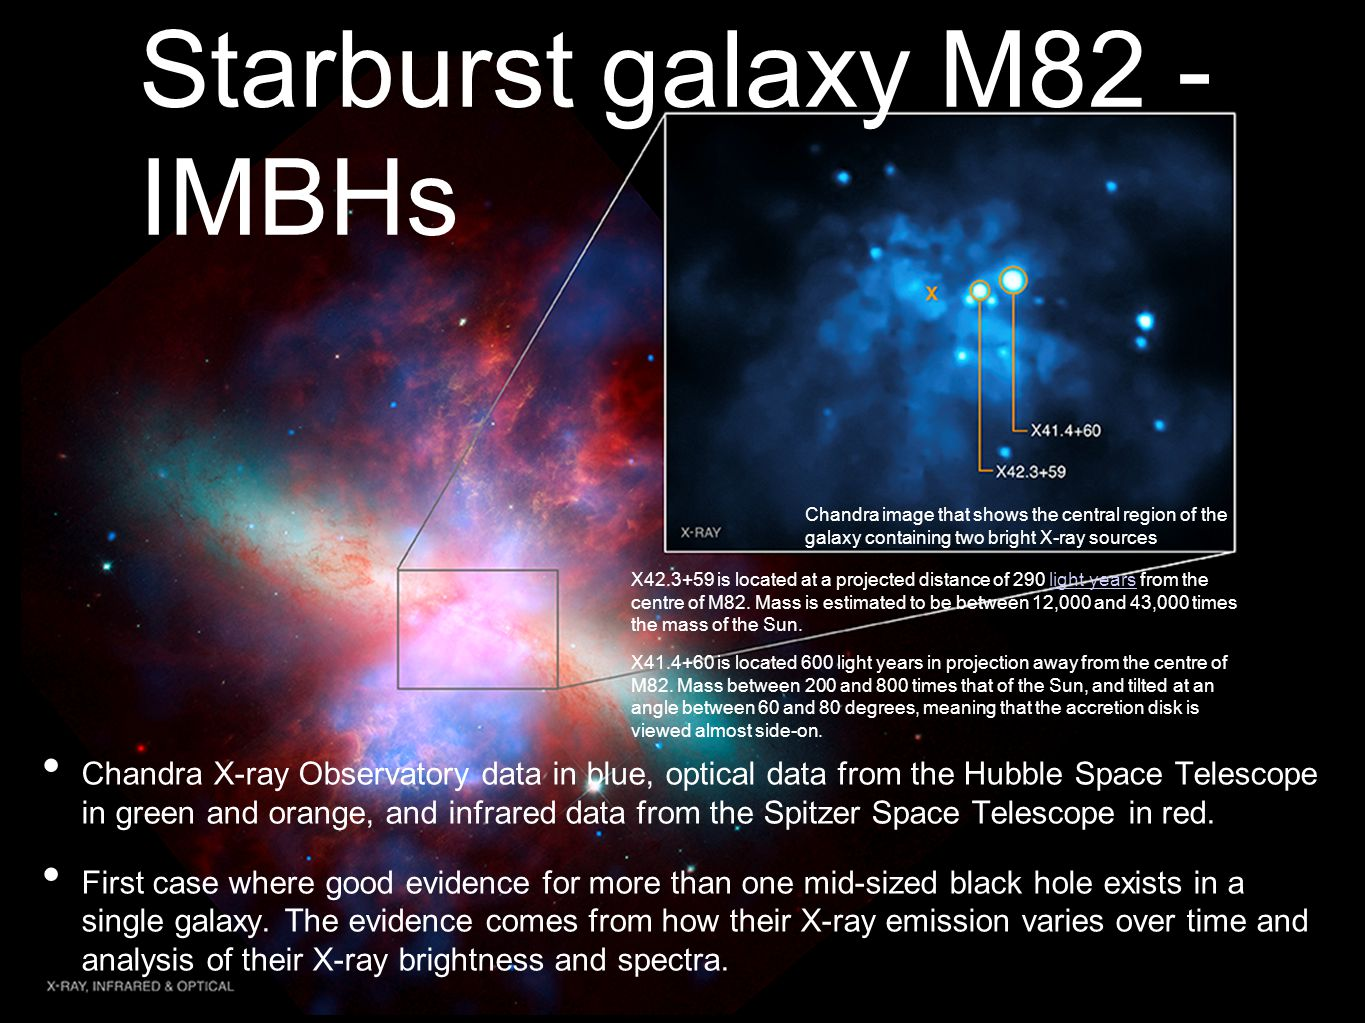 Starburst galaxy M82 - IMBHs Chandra X-ray Observatory data in blue, optical data from the Hubble Space Telescope in green and orange, and infrared data from the Spitzer Space Telescope in red.